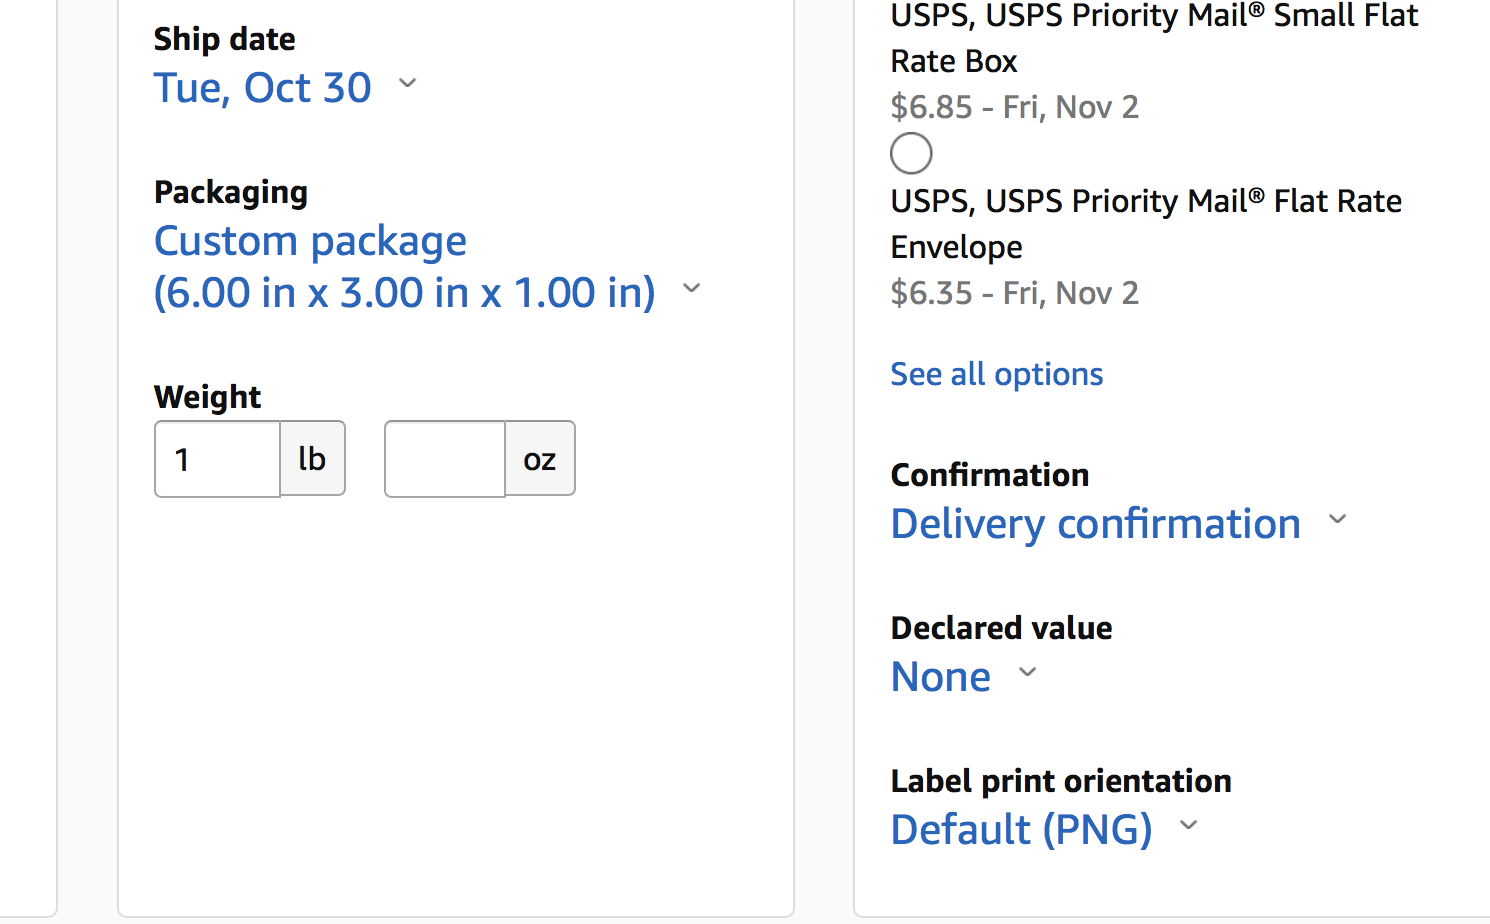 what is the package value usps